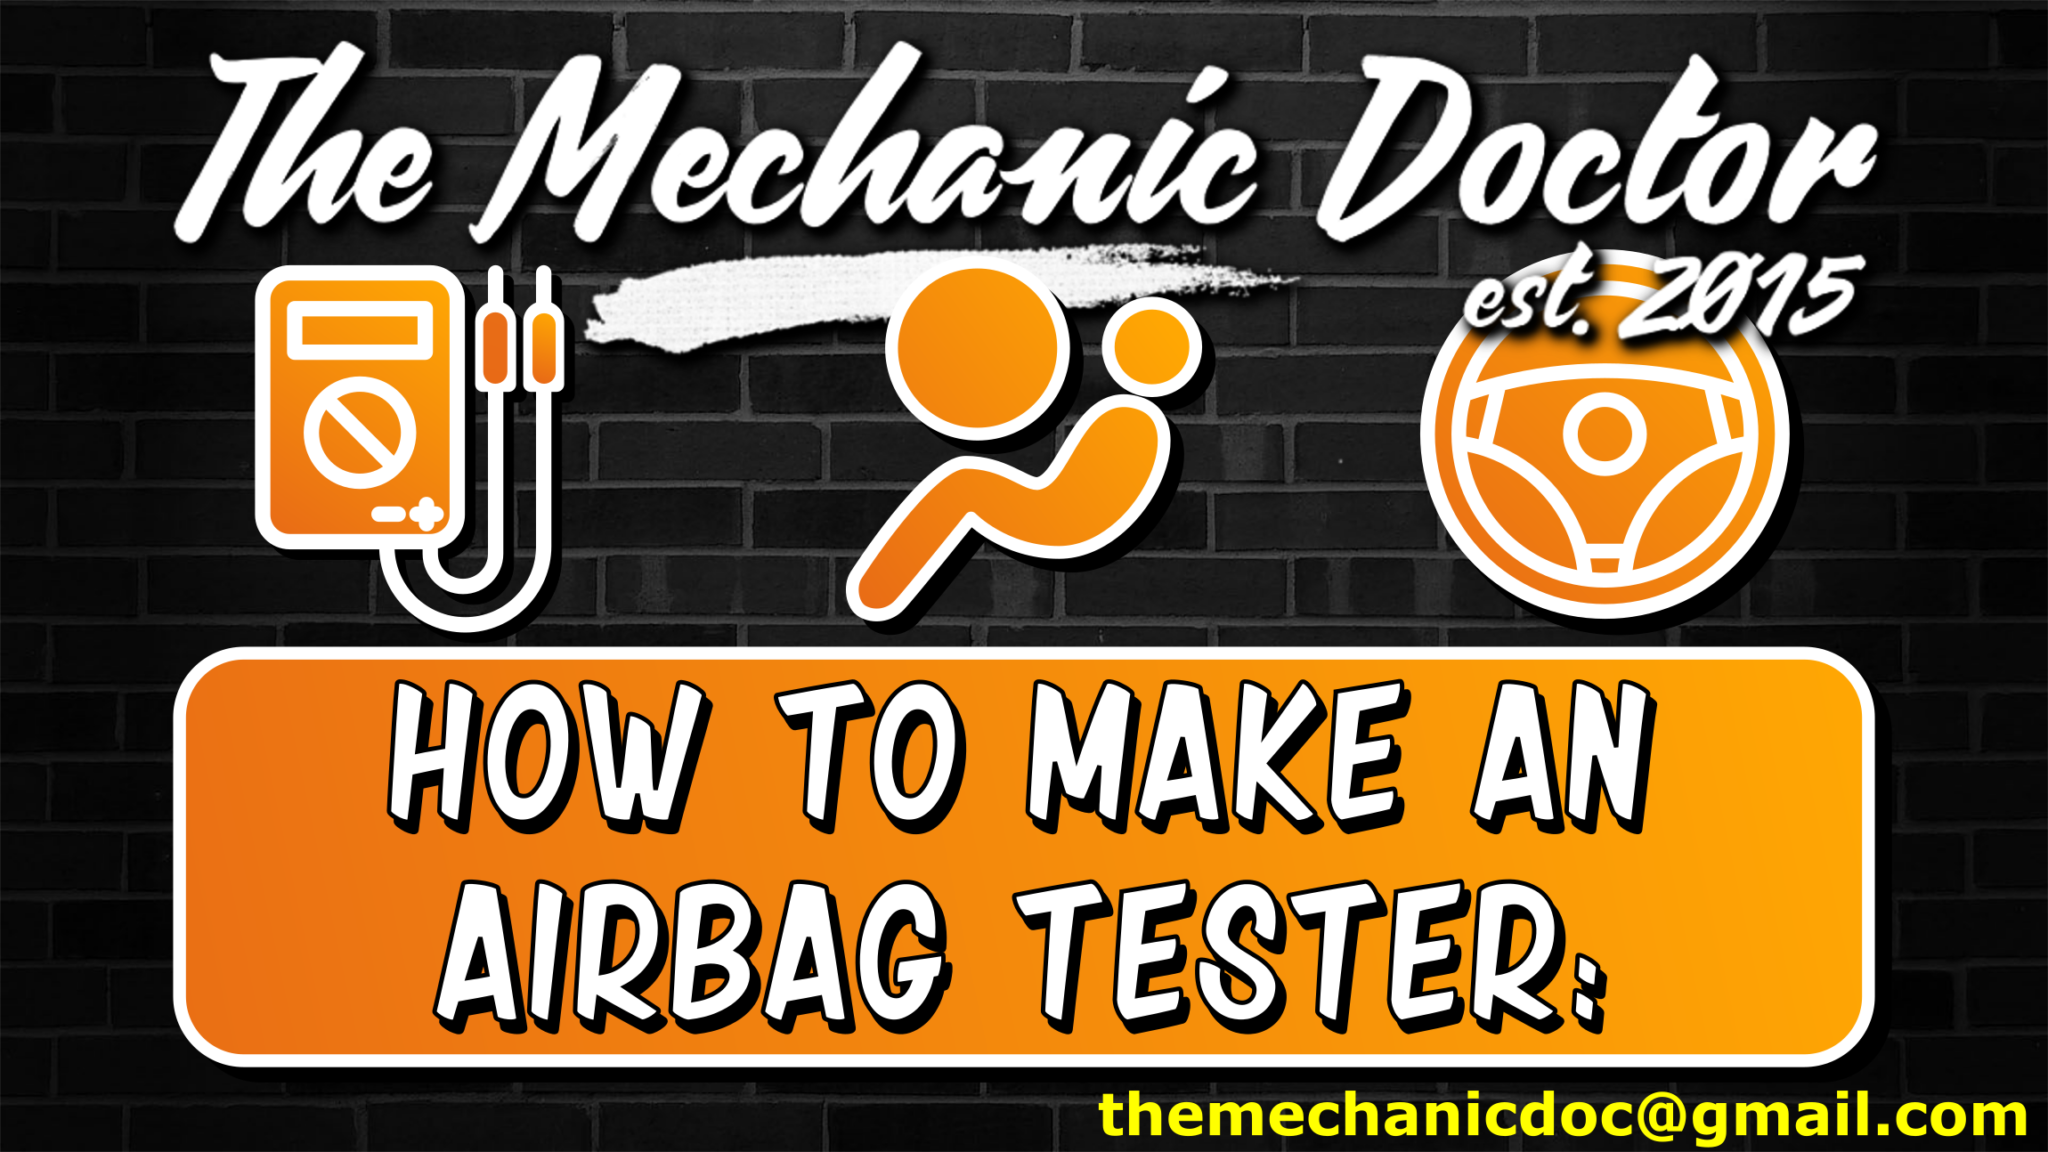 How To Make: DIY Airbag Tester for airbag diagnosis